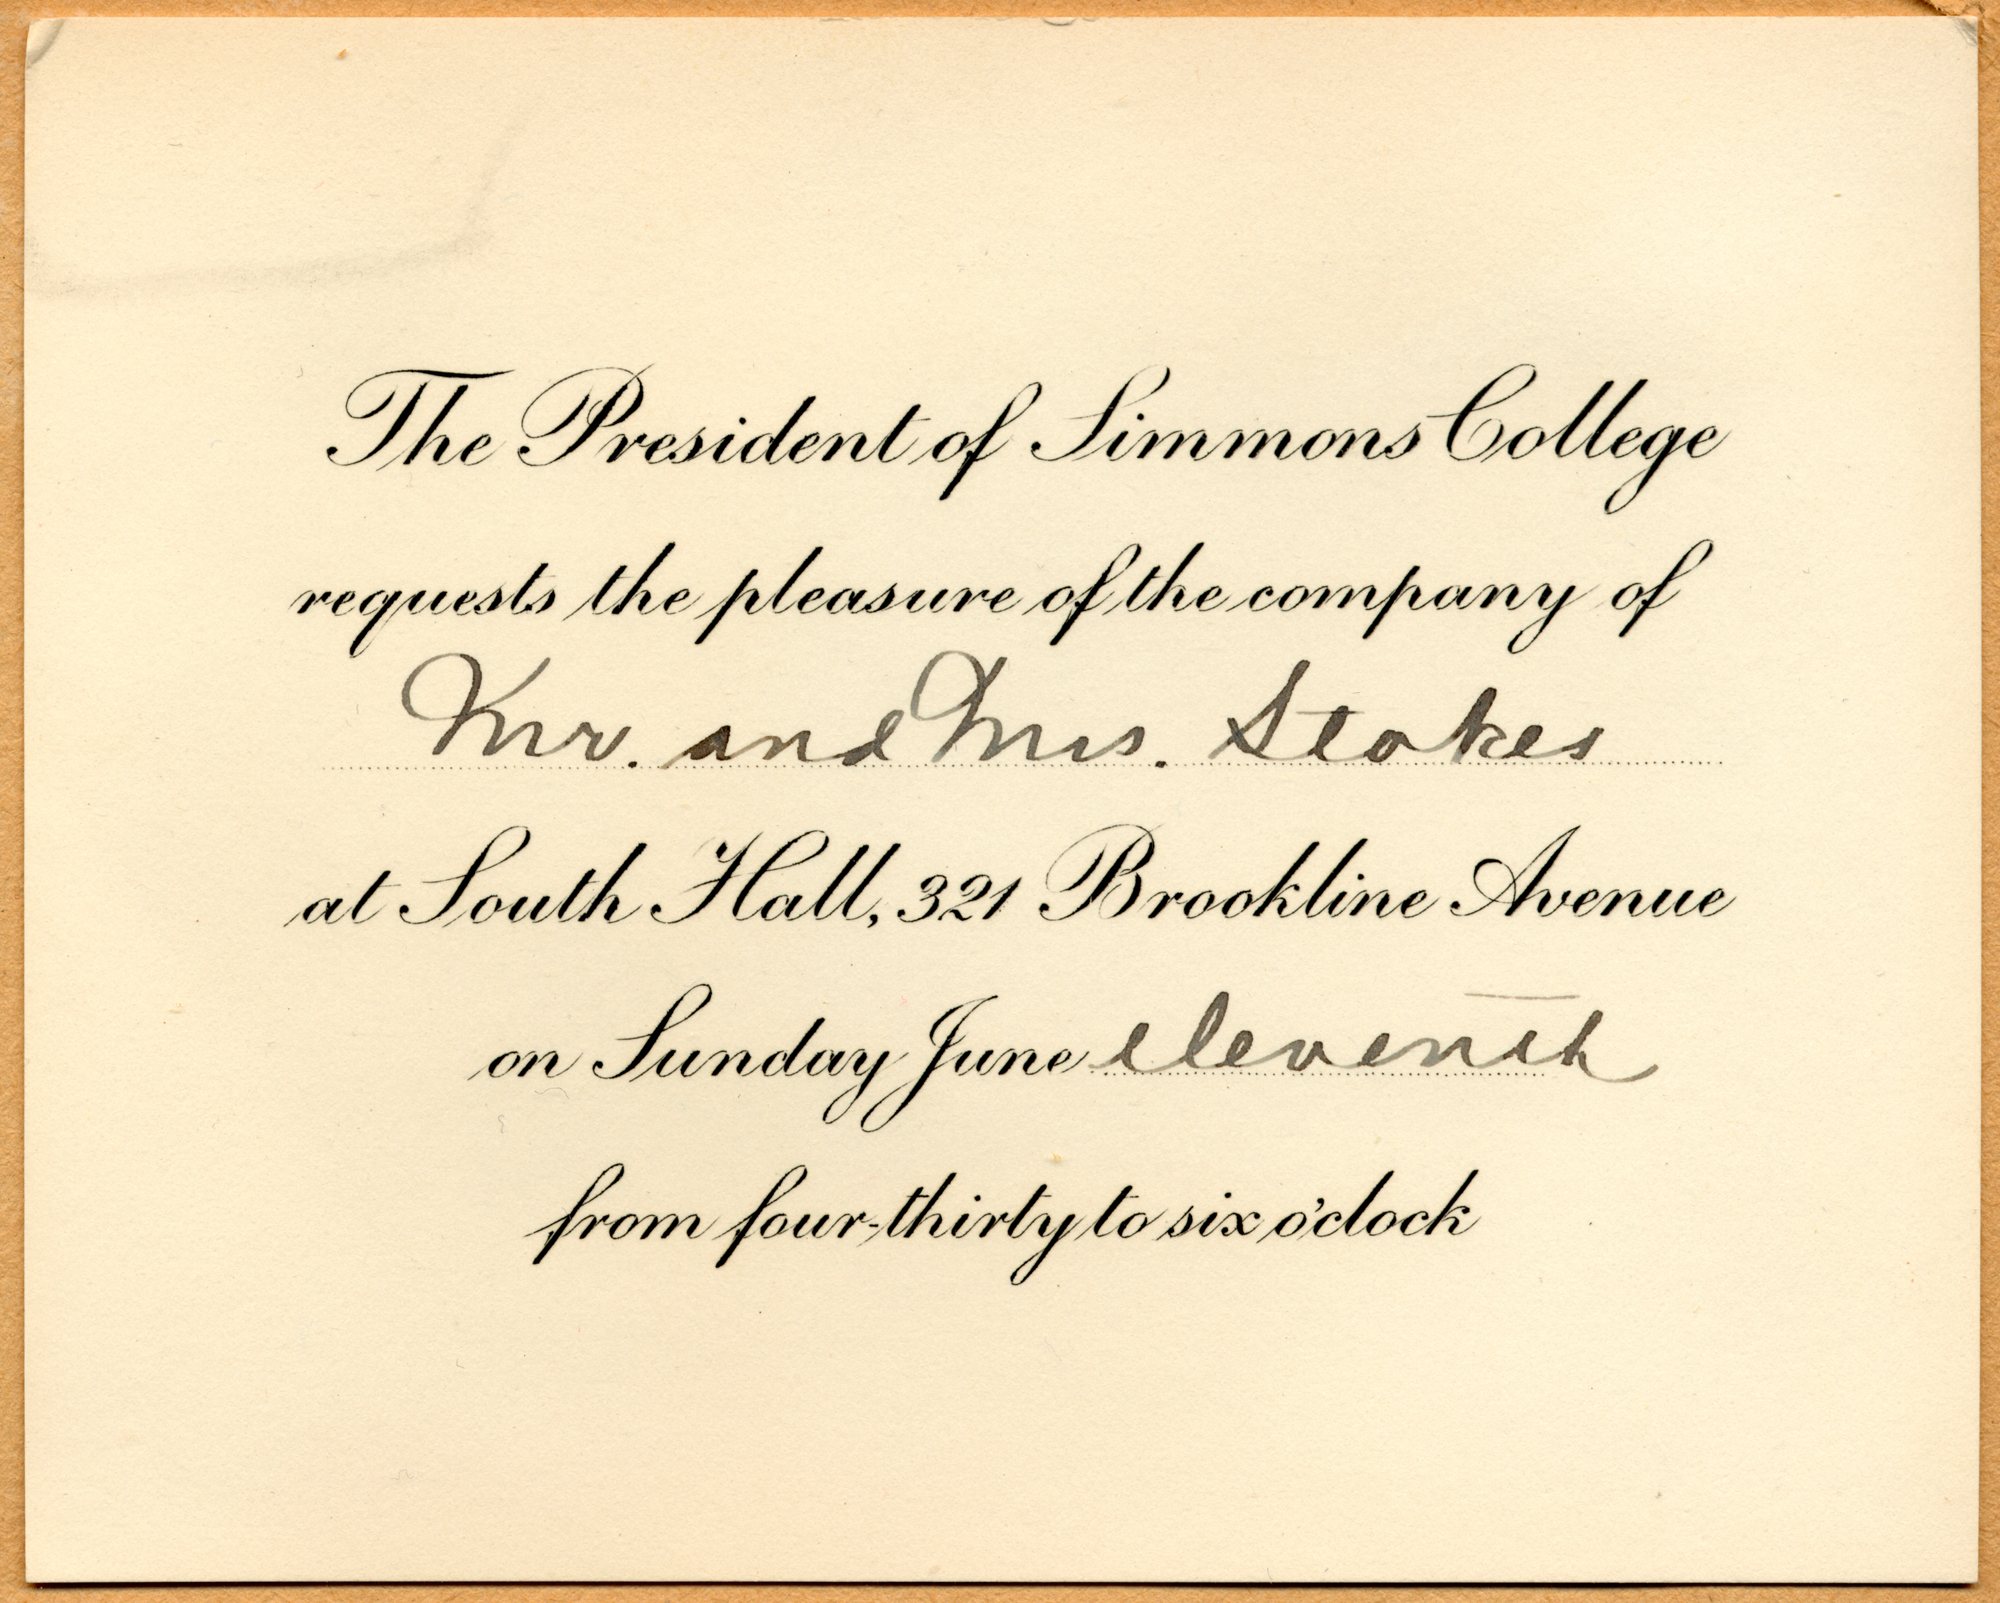 Caroline Invitation to commencement for Mr and Mrs Stokes